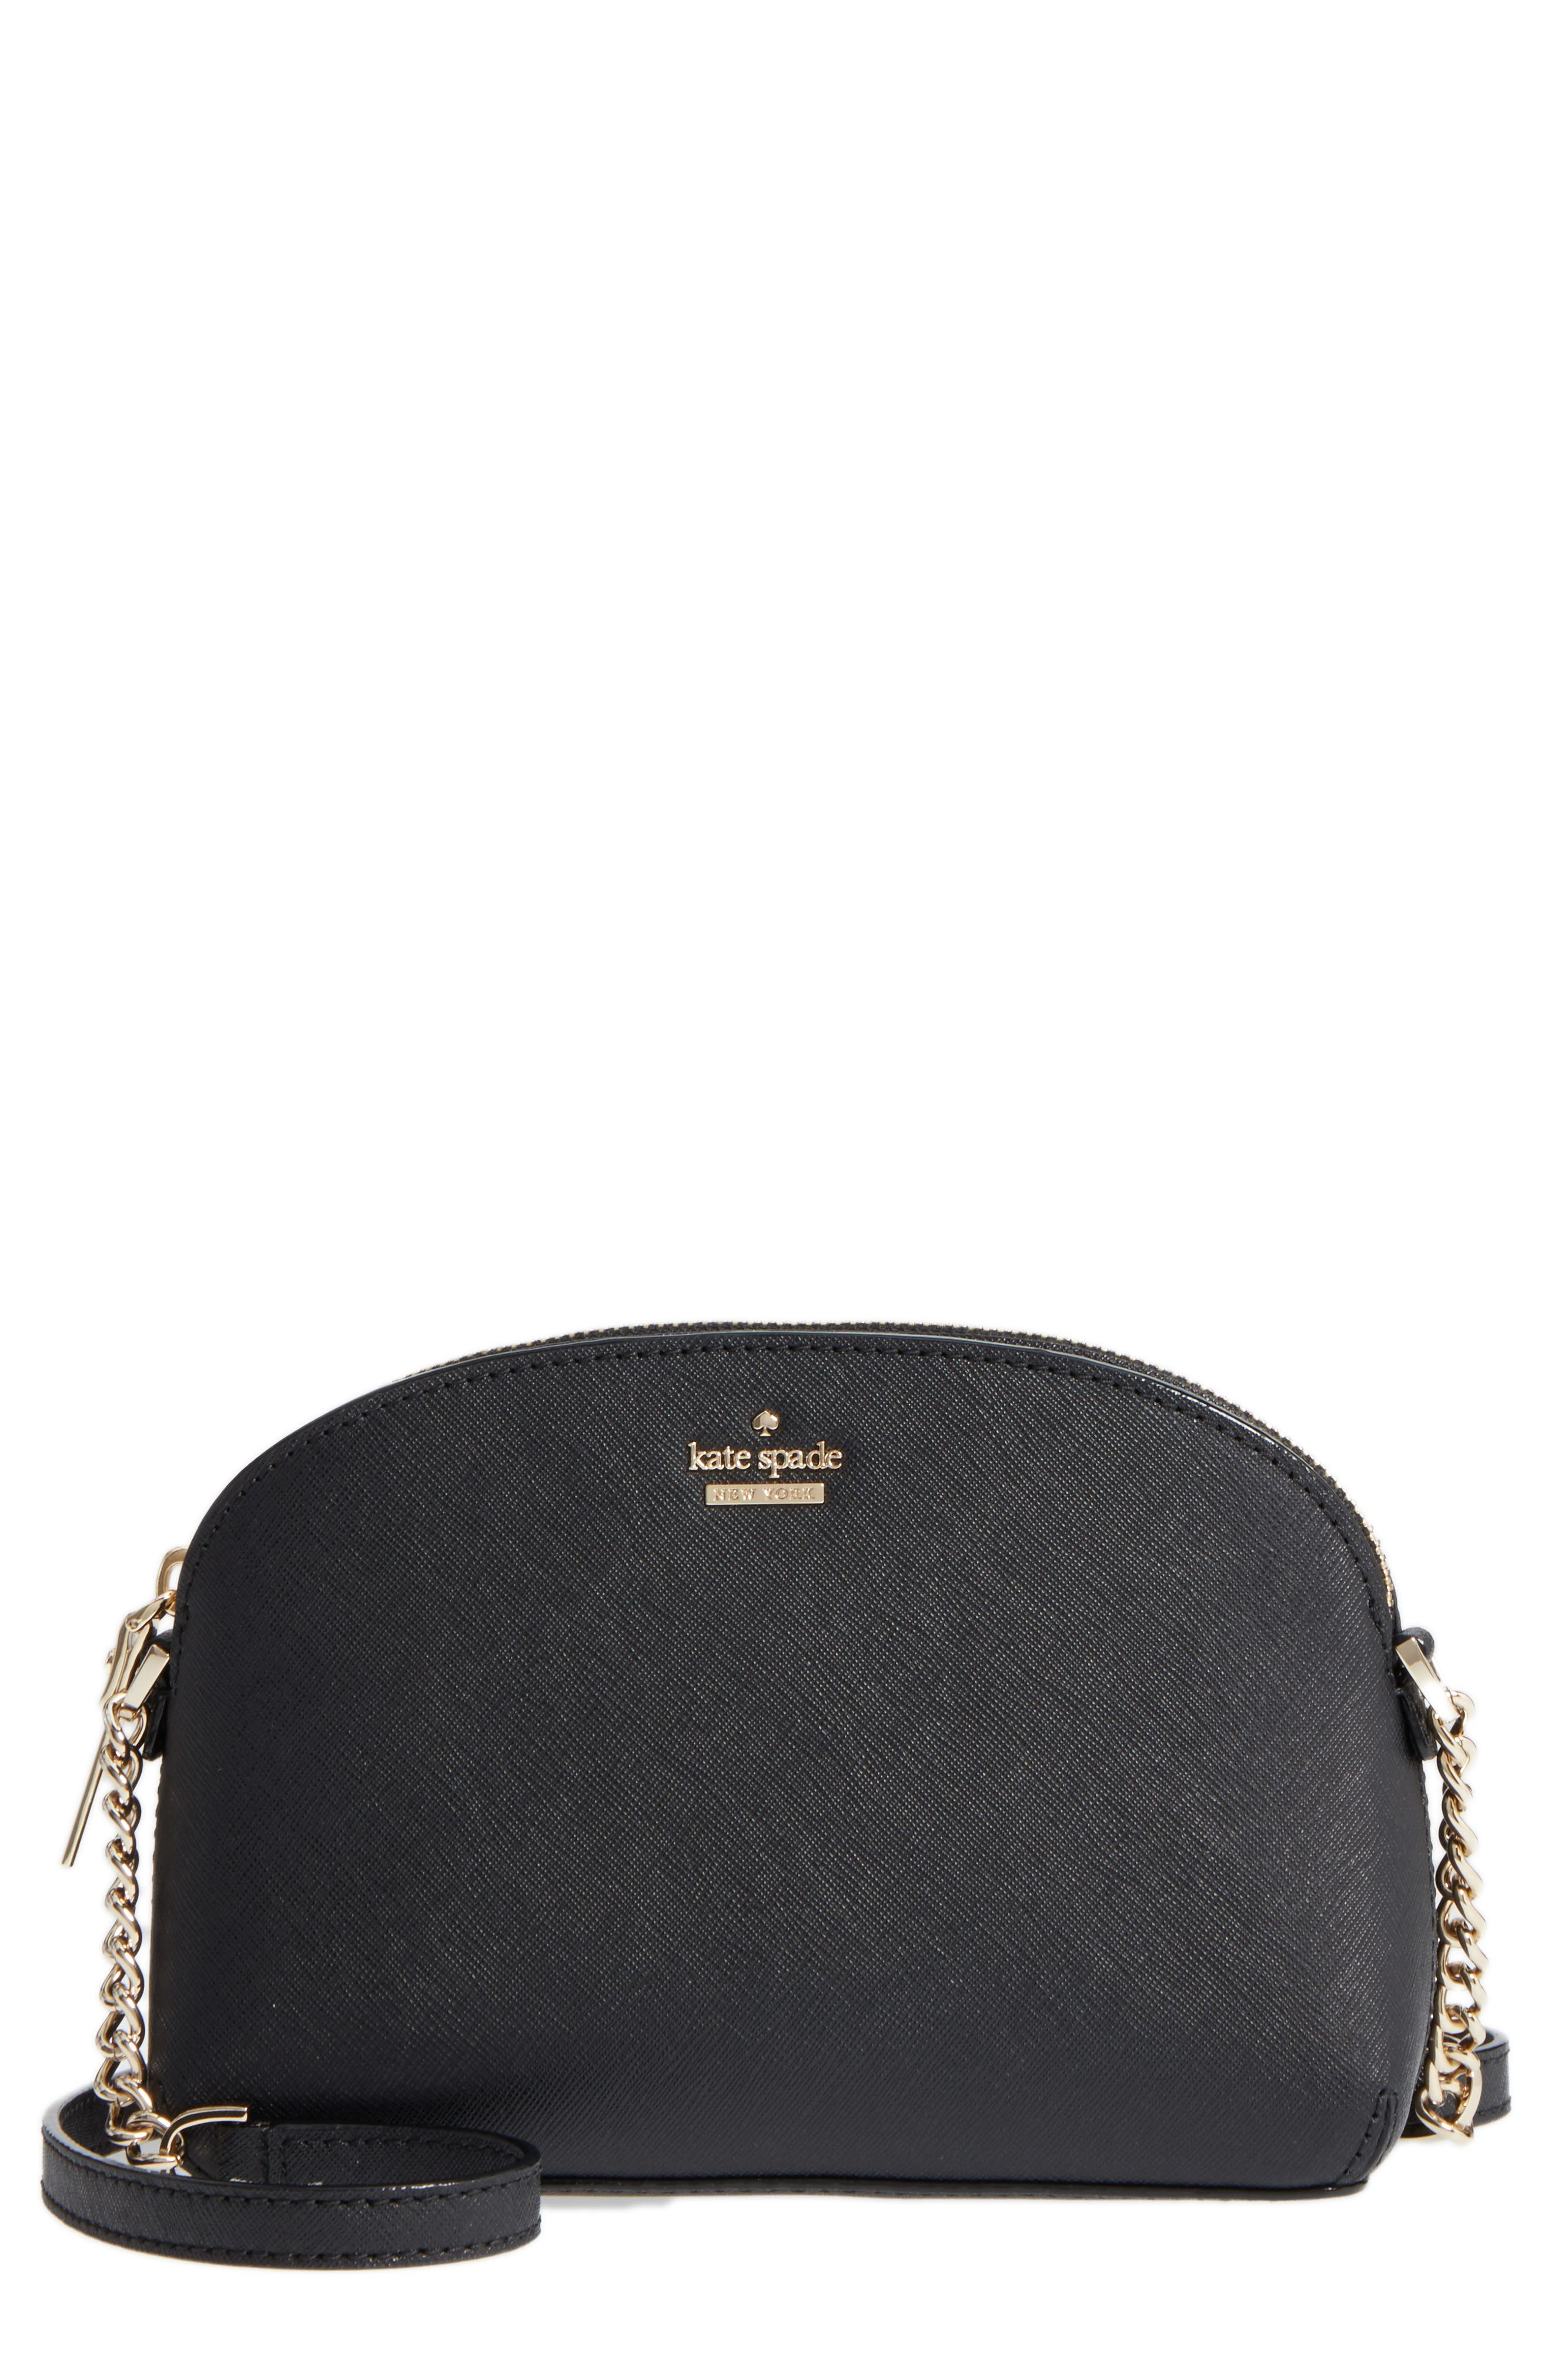 kate spade new york cameron street - hilli leather crossbody bag